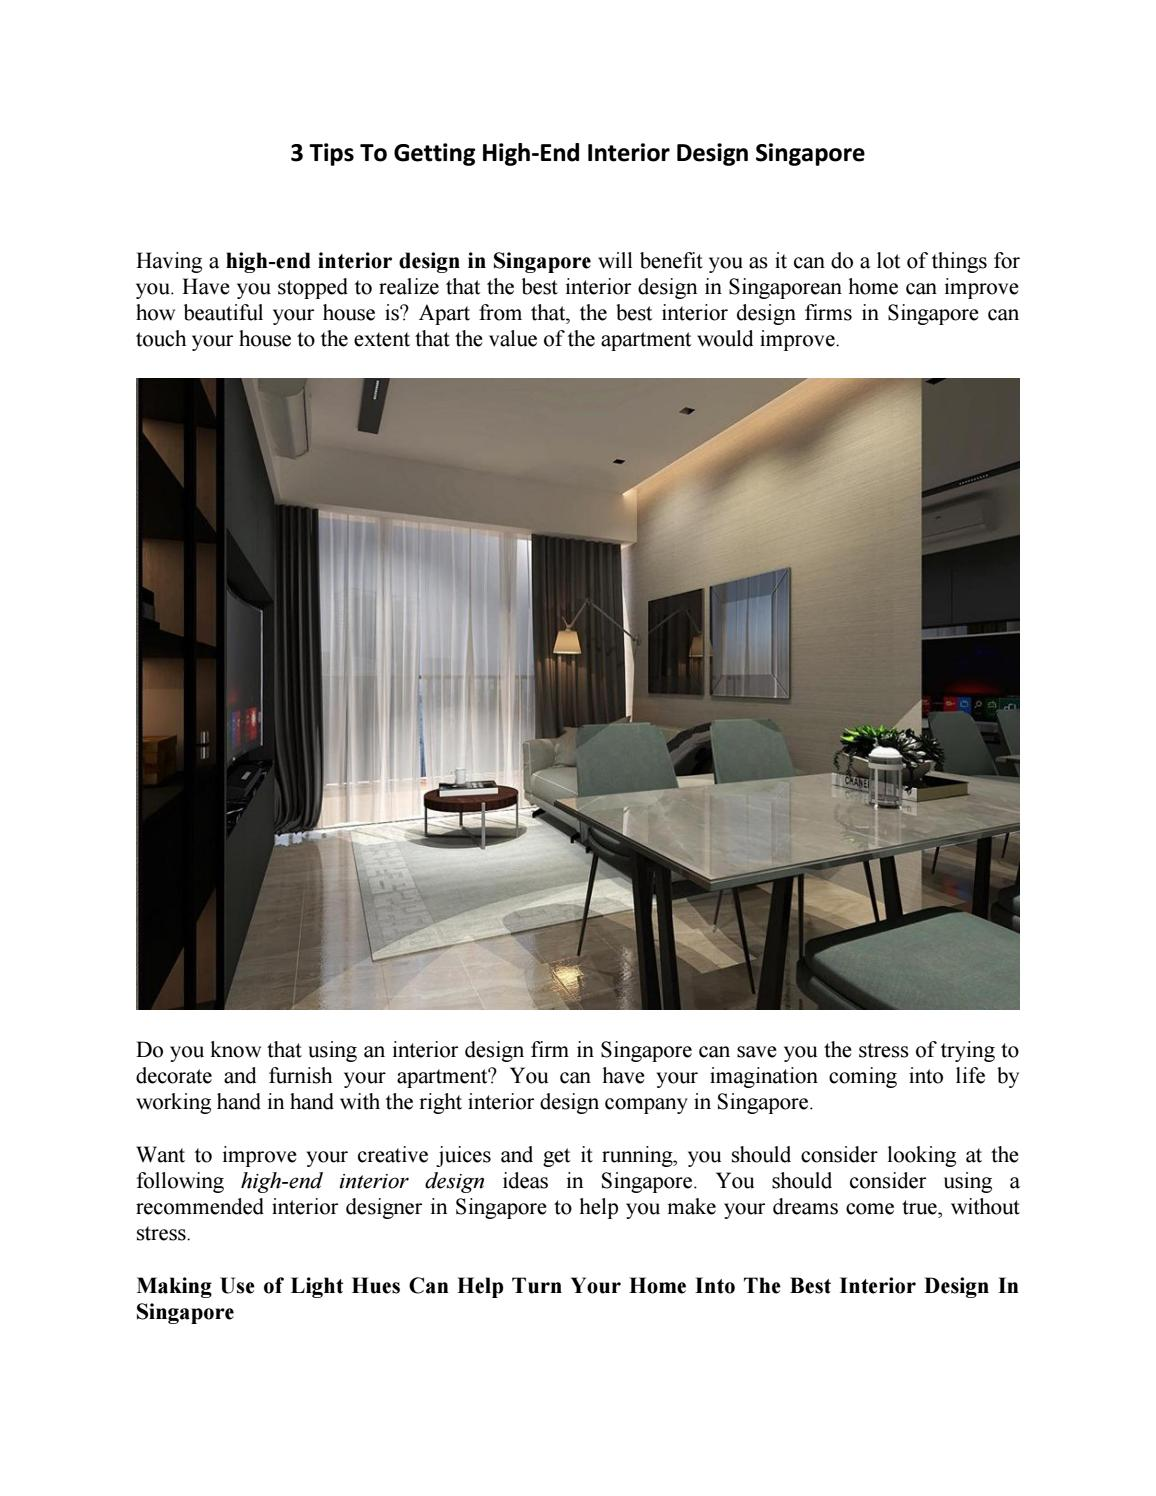 3 Tips To Getting High End Interior Design Singapore By Miske Schultz Issuu